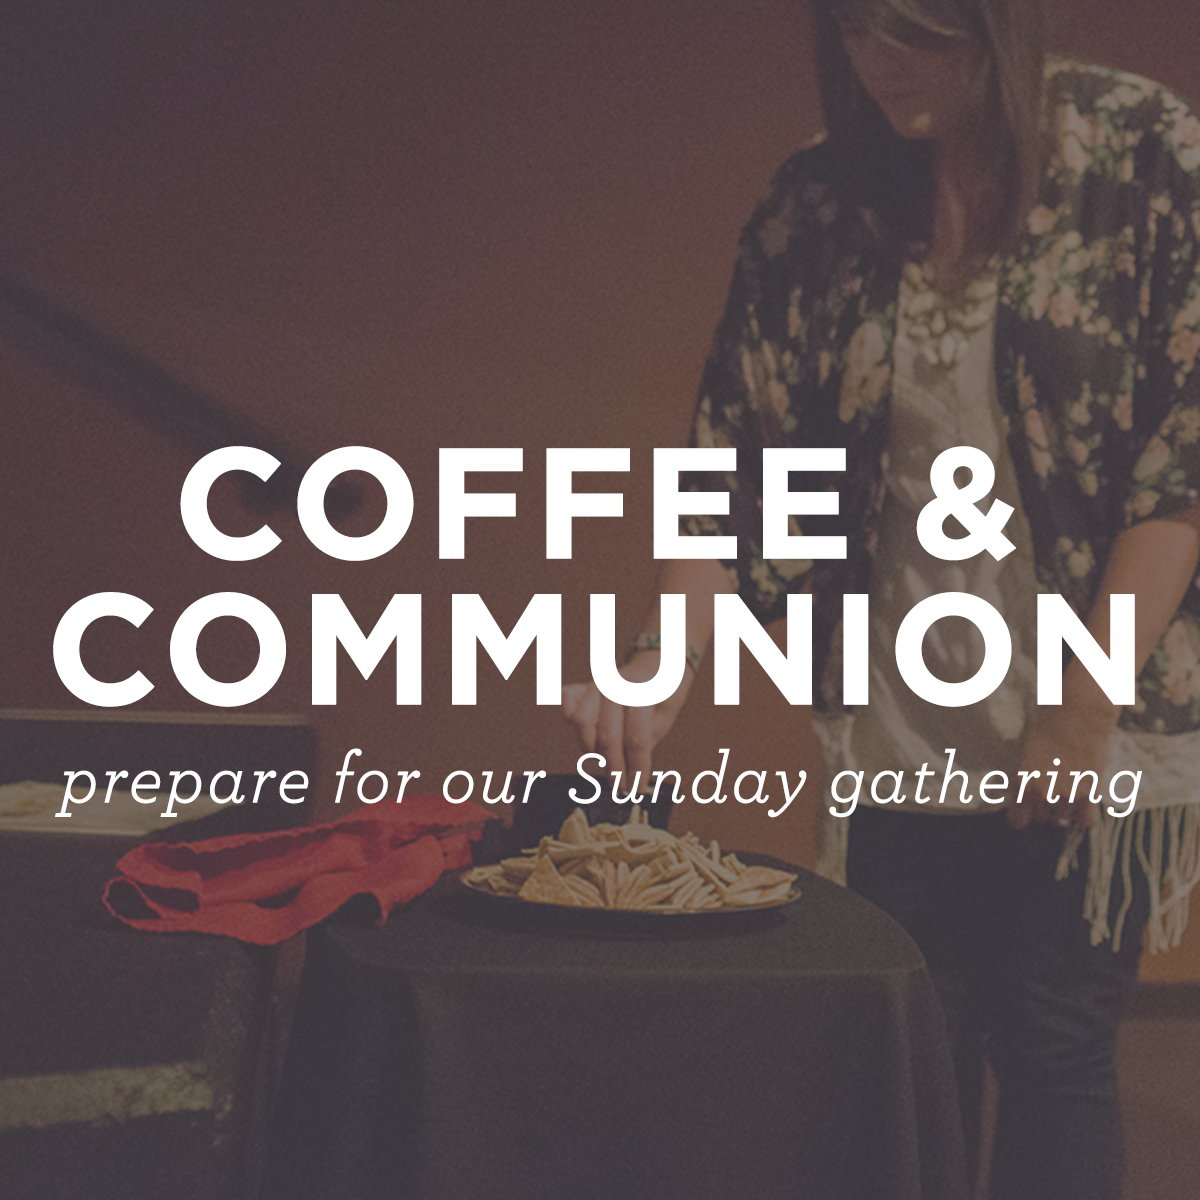 Coffee & Communion